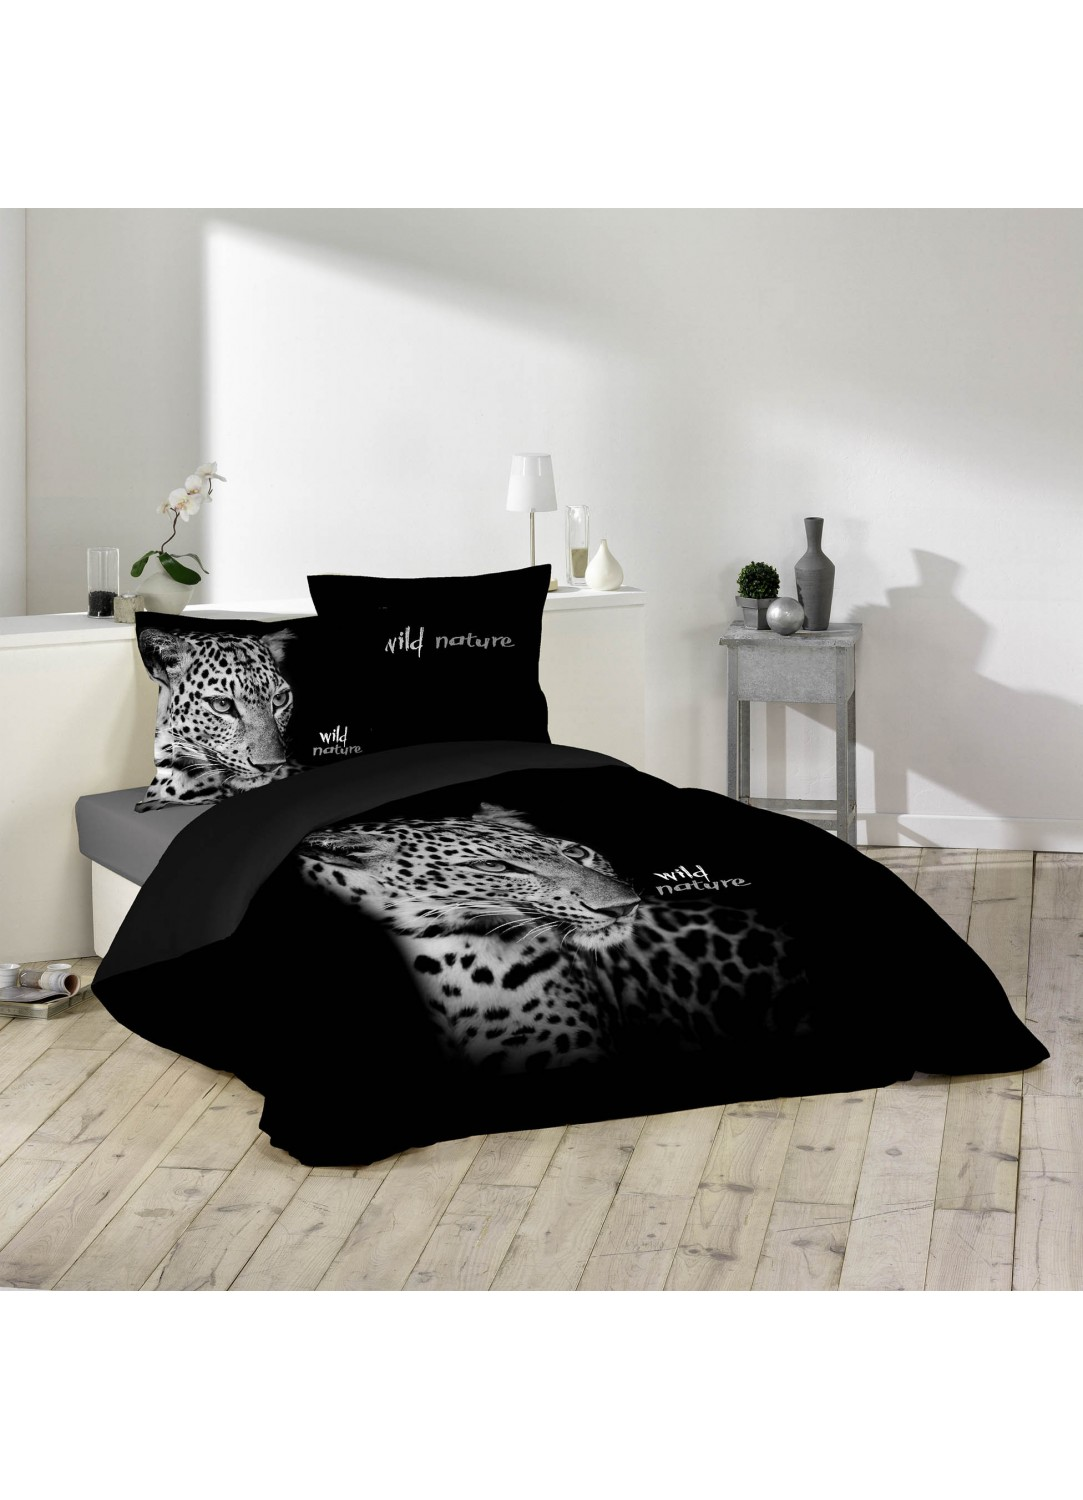 parure de lit imprim e place wild nature noir homemaison vente en ligne parures de lit. Black Bedroom Furniture Sets. Home Design Ideas